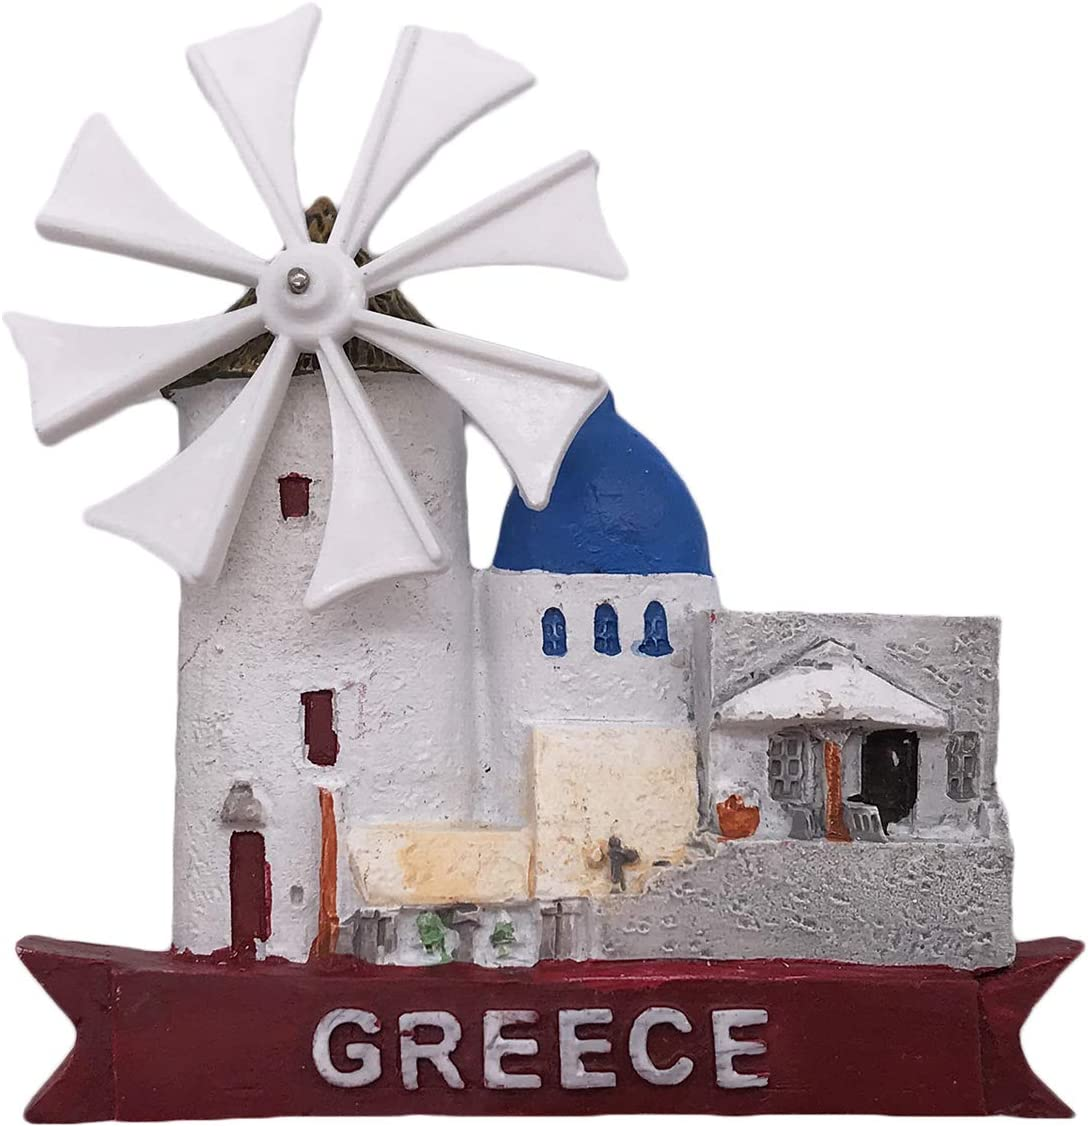 Santorini Greece 3D Windmill Refrigerator Magnet Tourist Souvenirs Resin Magnetic Stickers Fridge Magnet Home & Kitchen Decoration from China